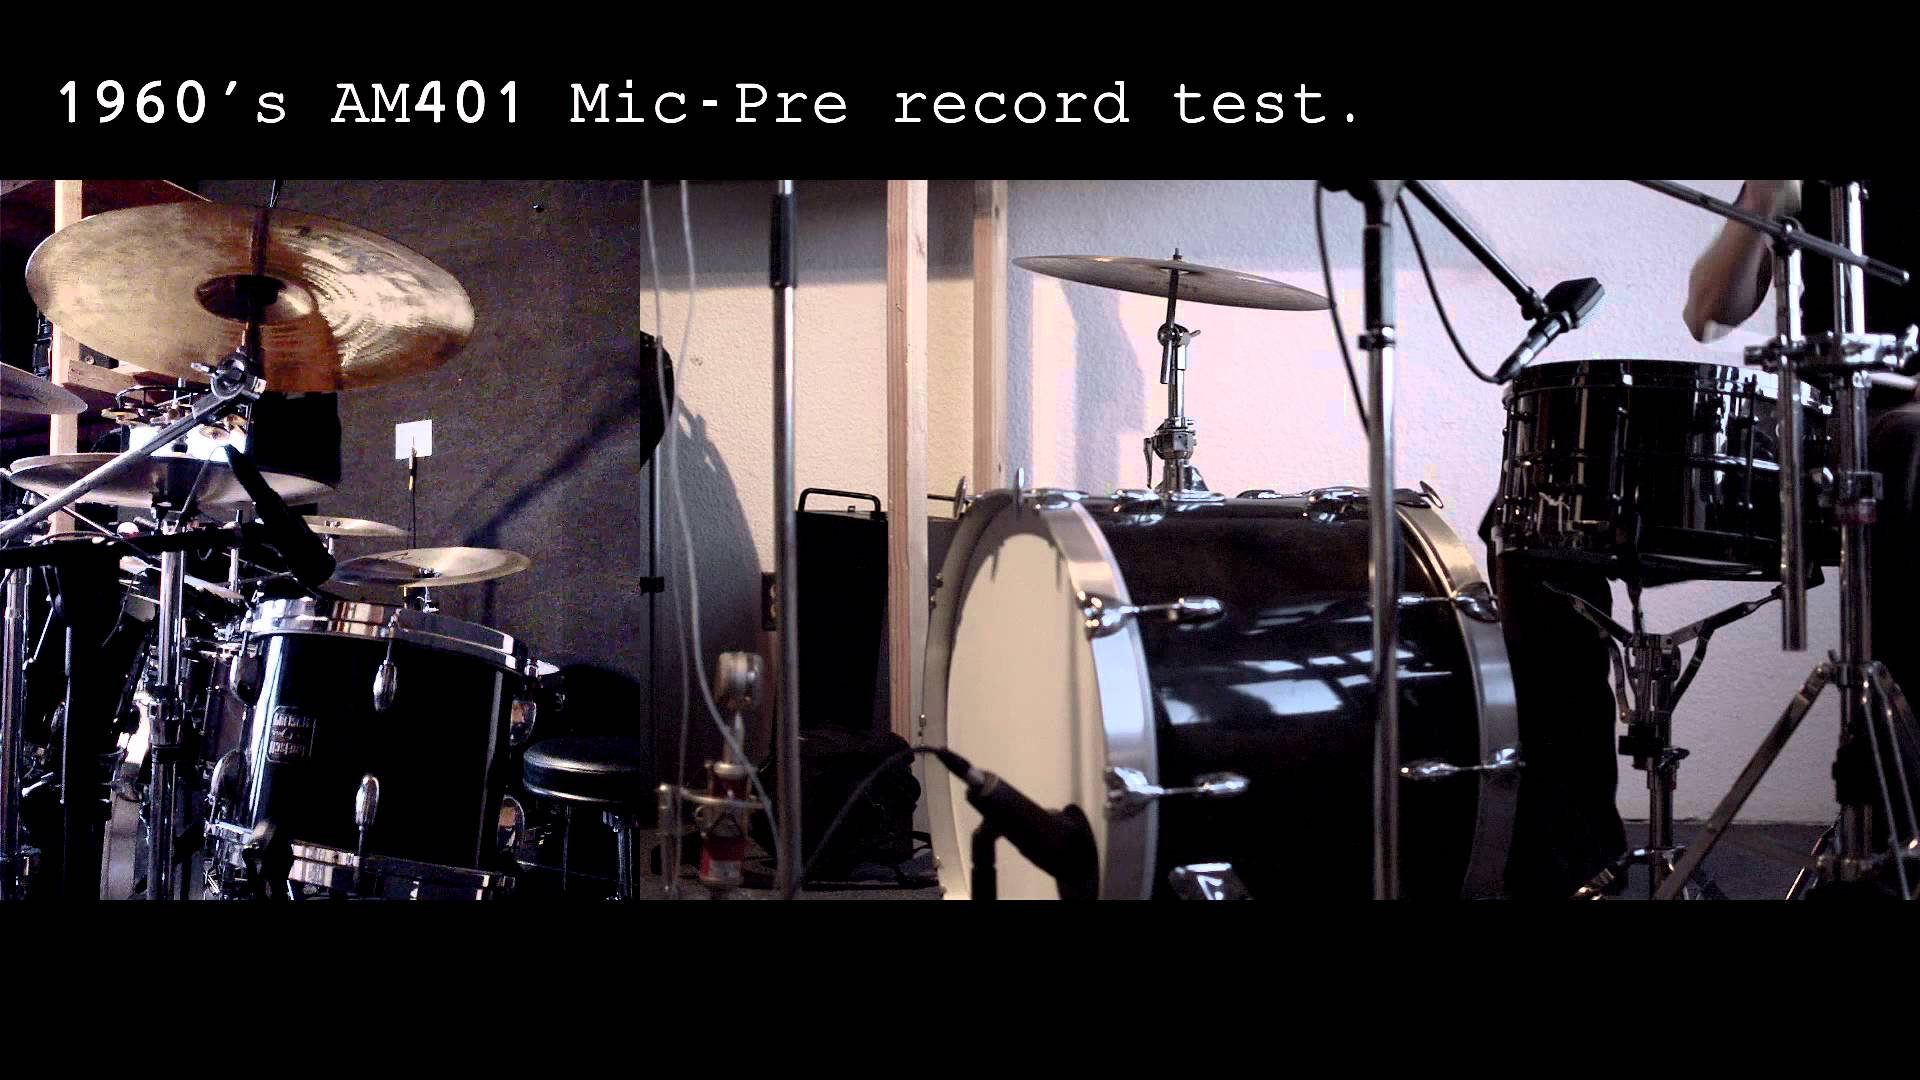 1960's AM401 Mic-Pre record test .